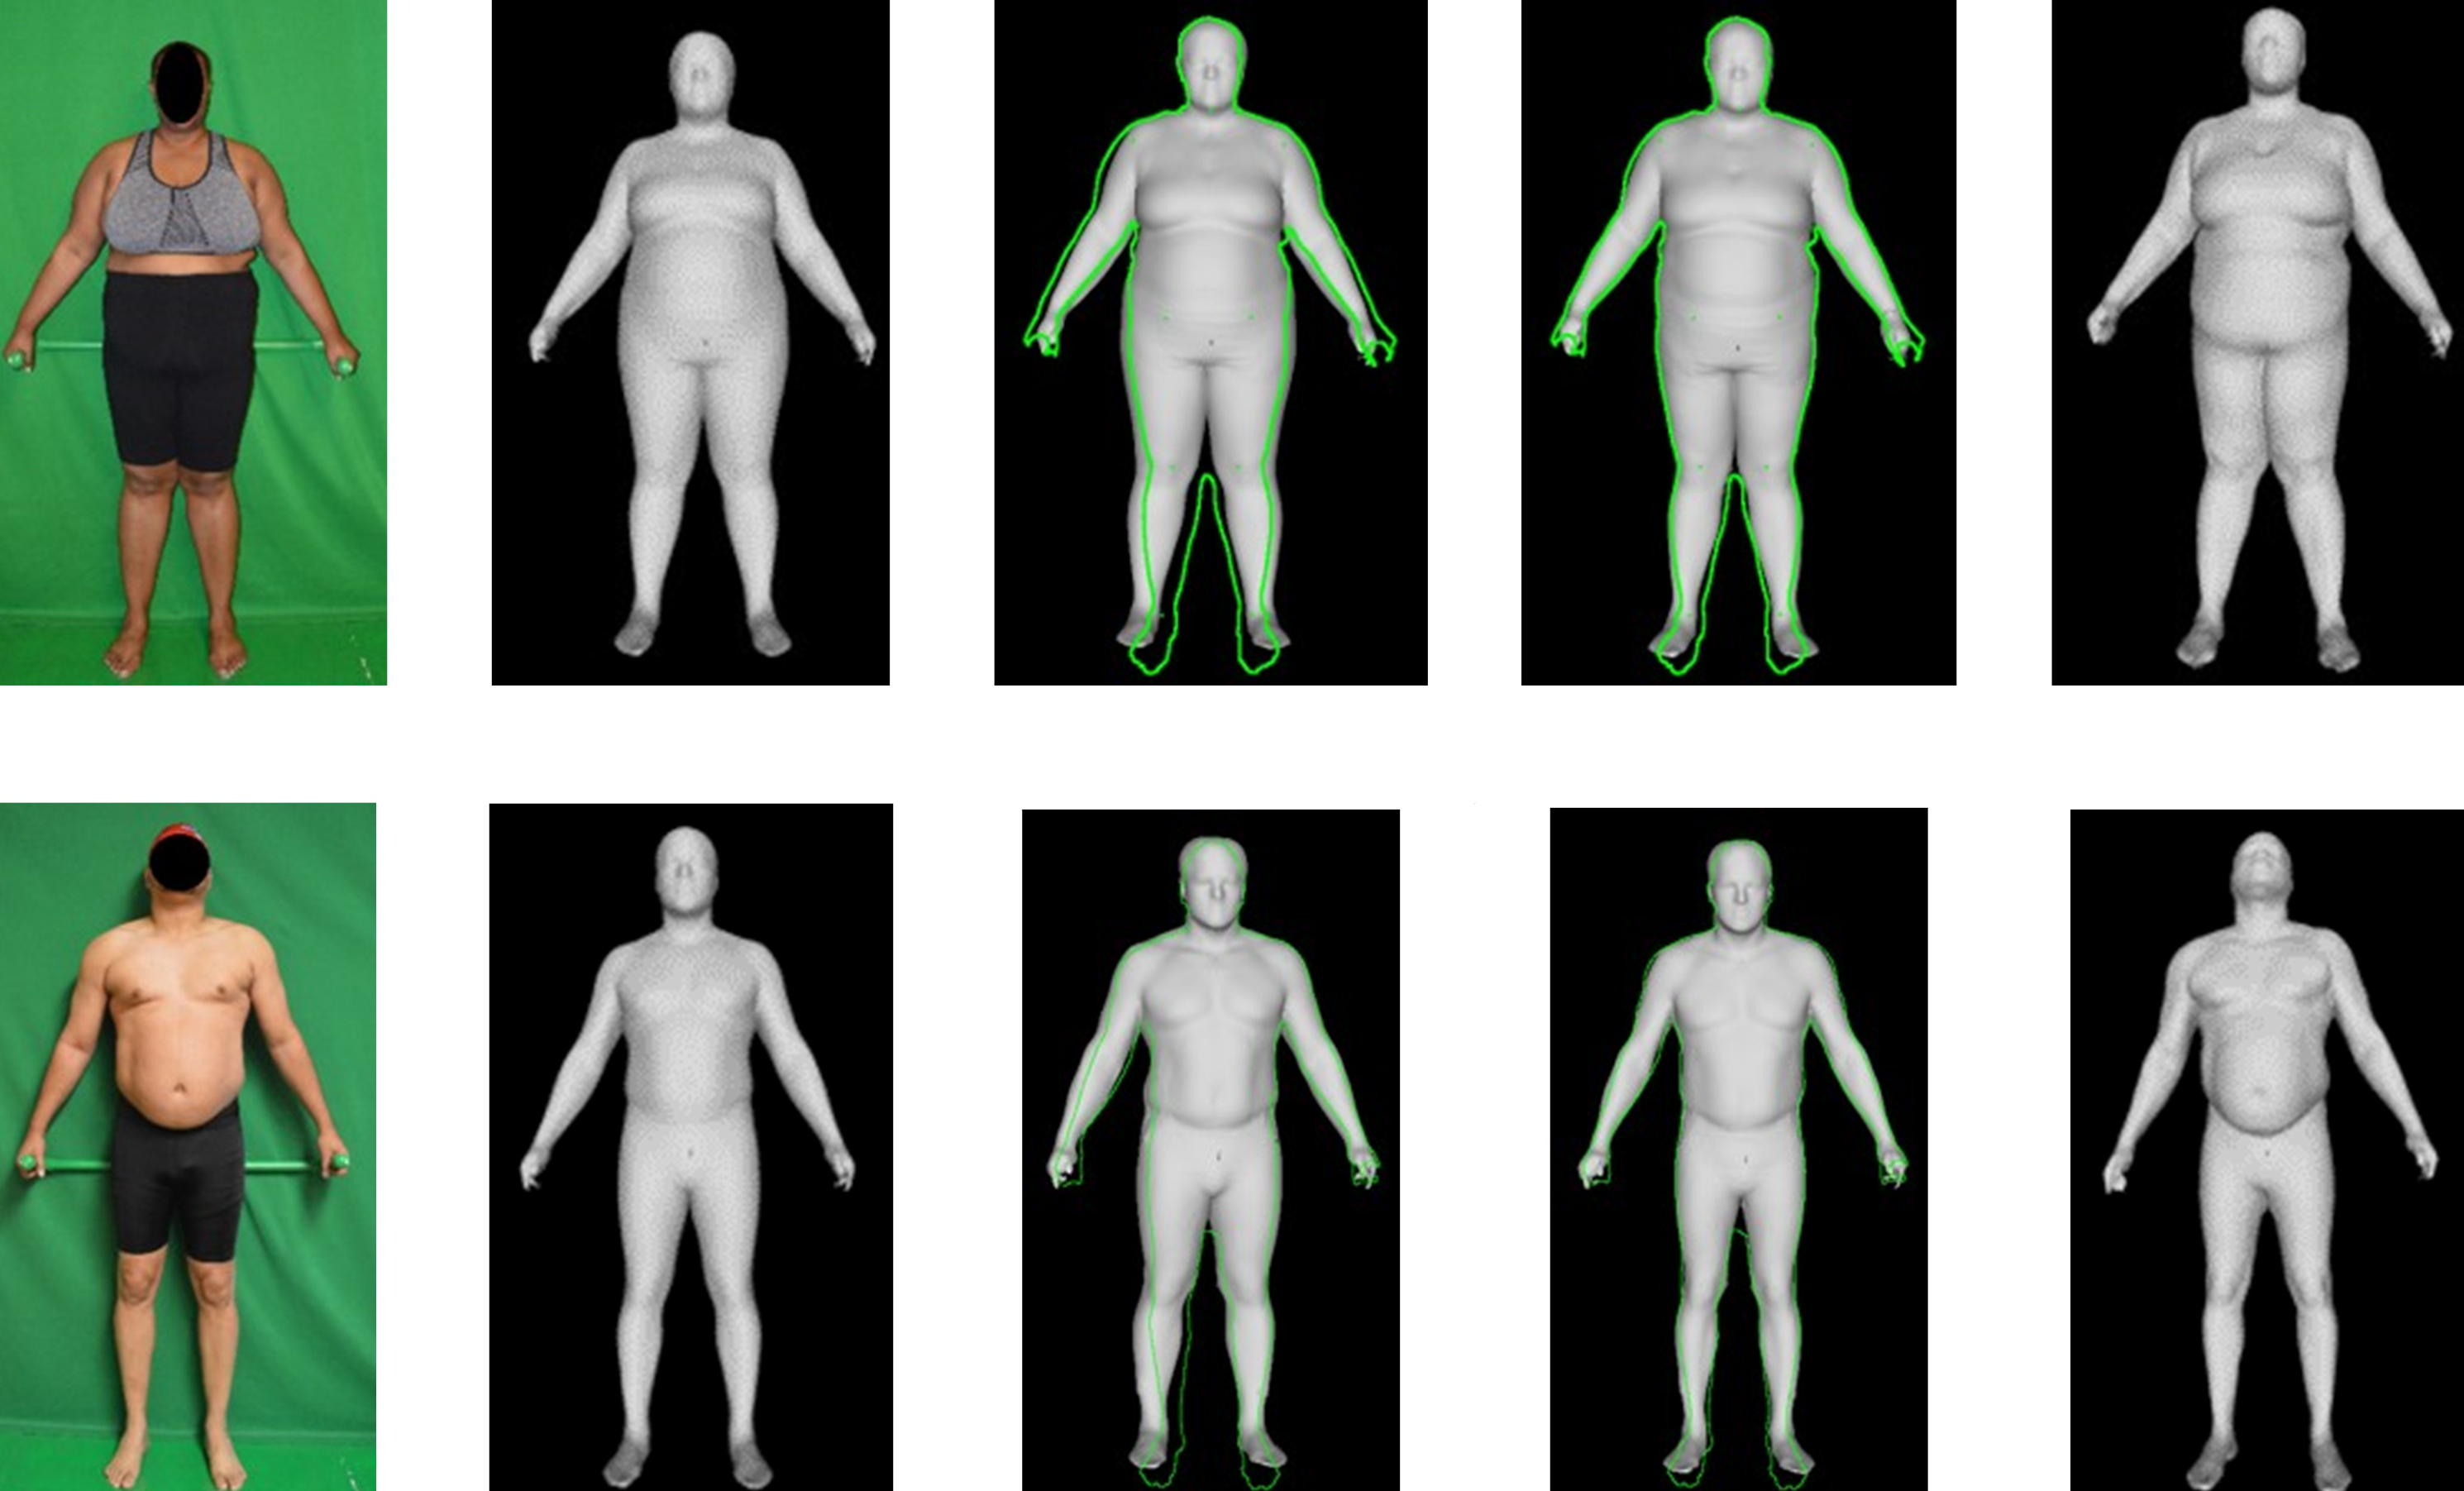 Predicting 3D body shape and body composition from conventional 2D photography